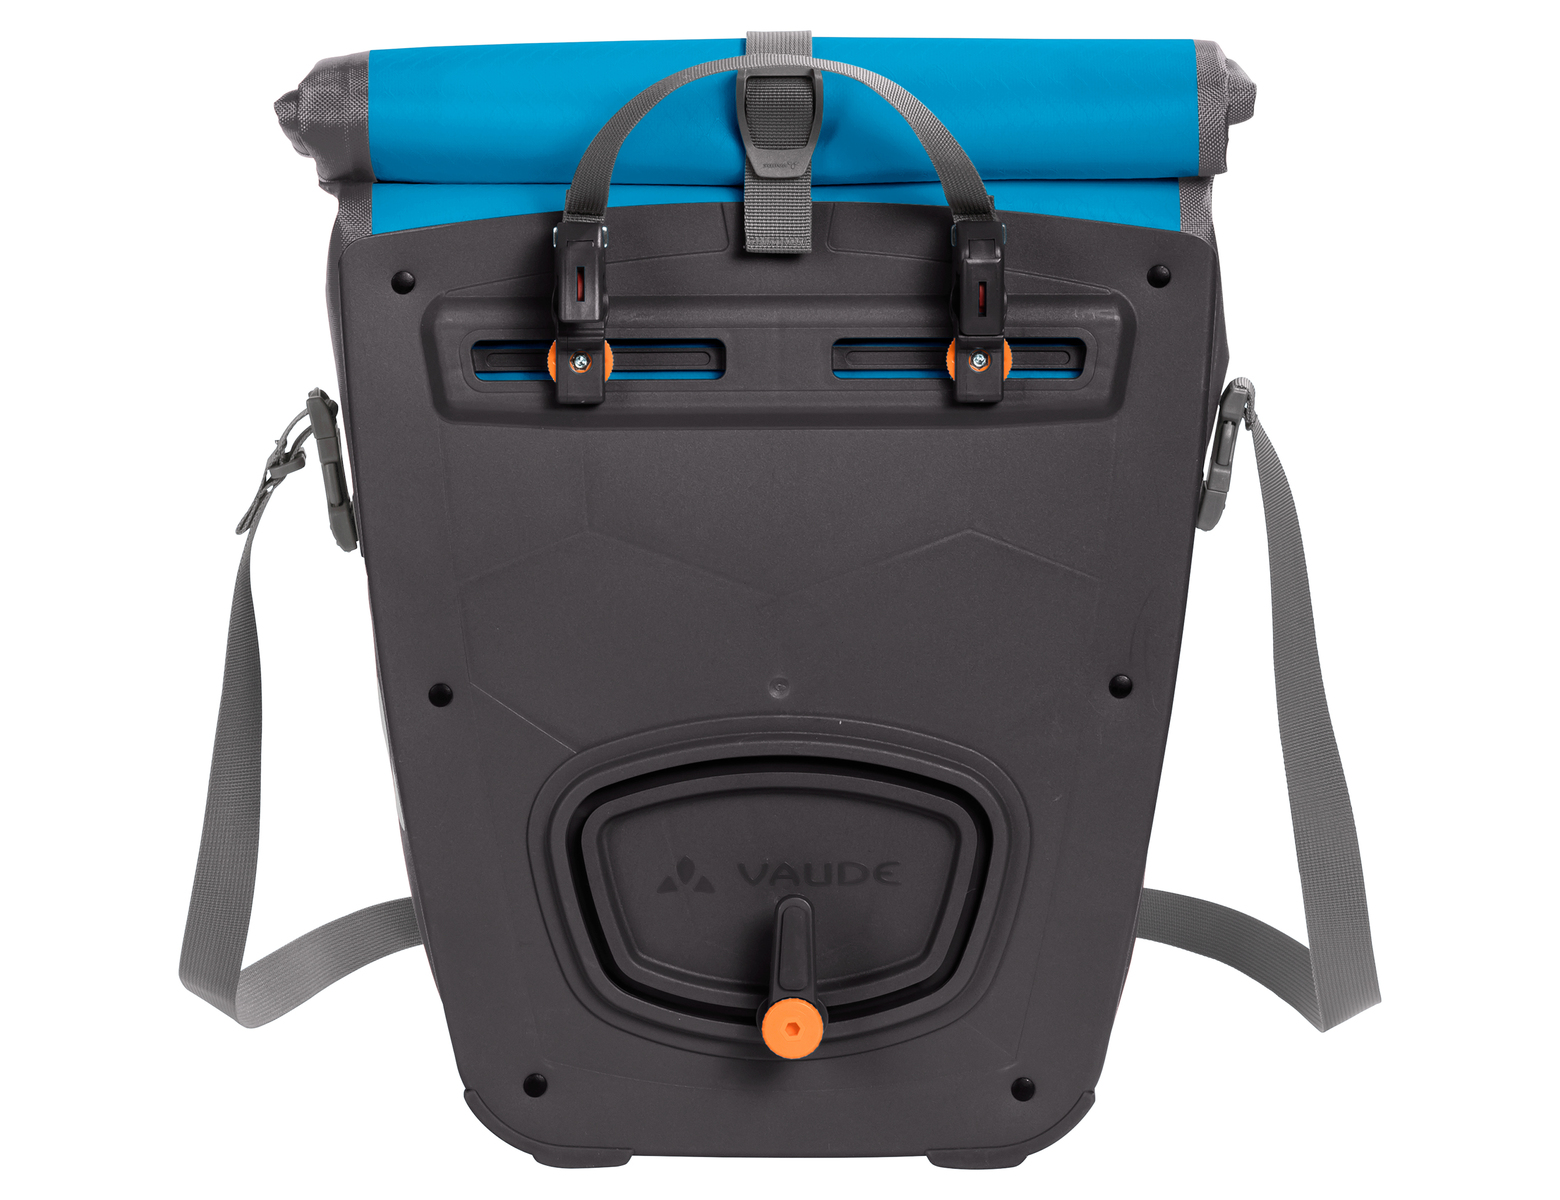 Fahrradtasche Aqua Back  Made in Germany 48 Liter - Icicle